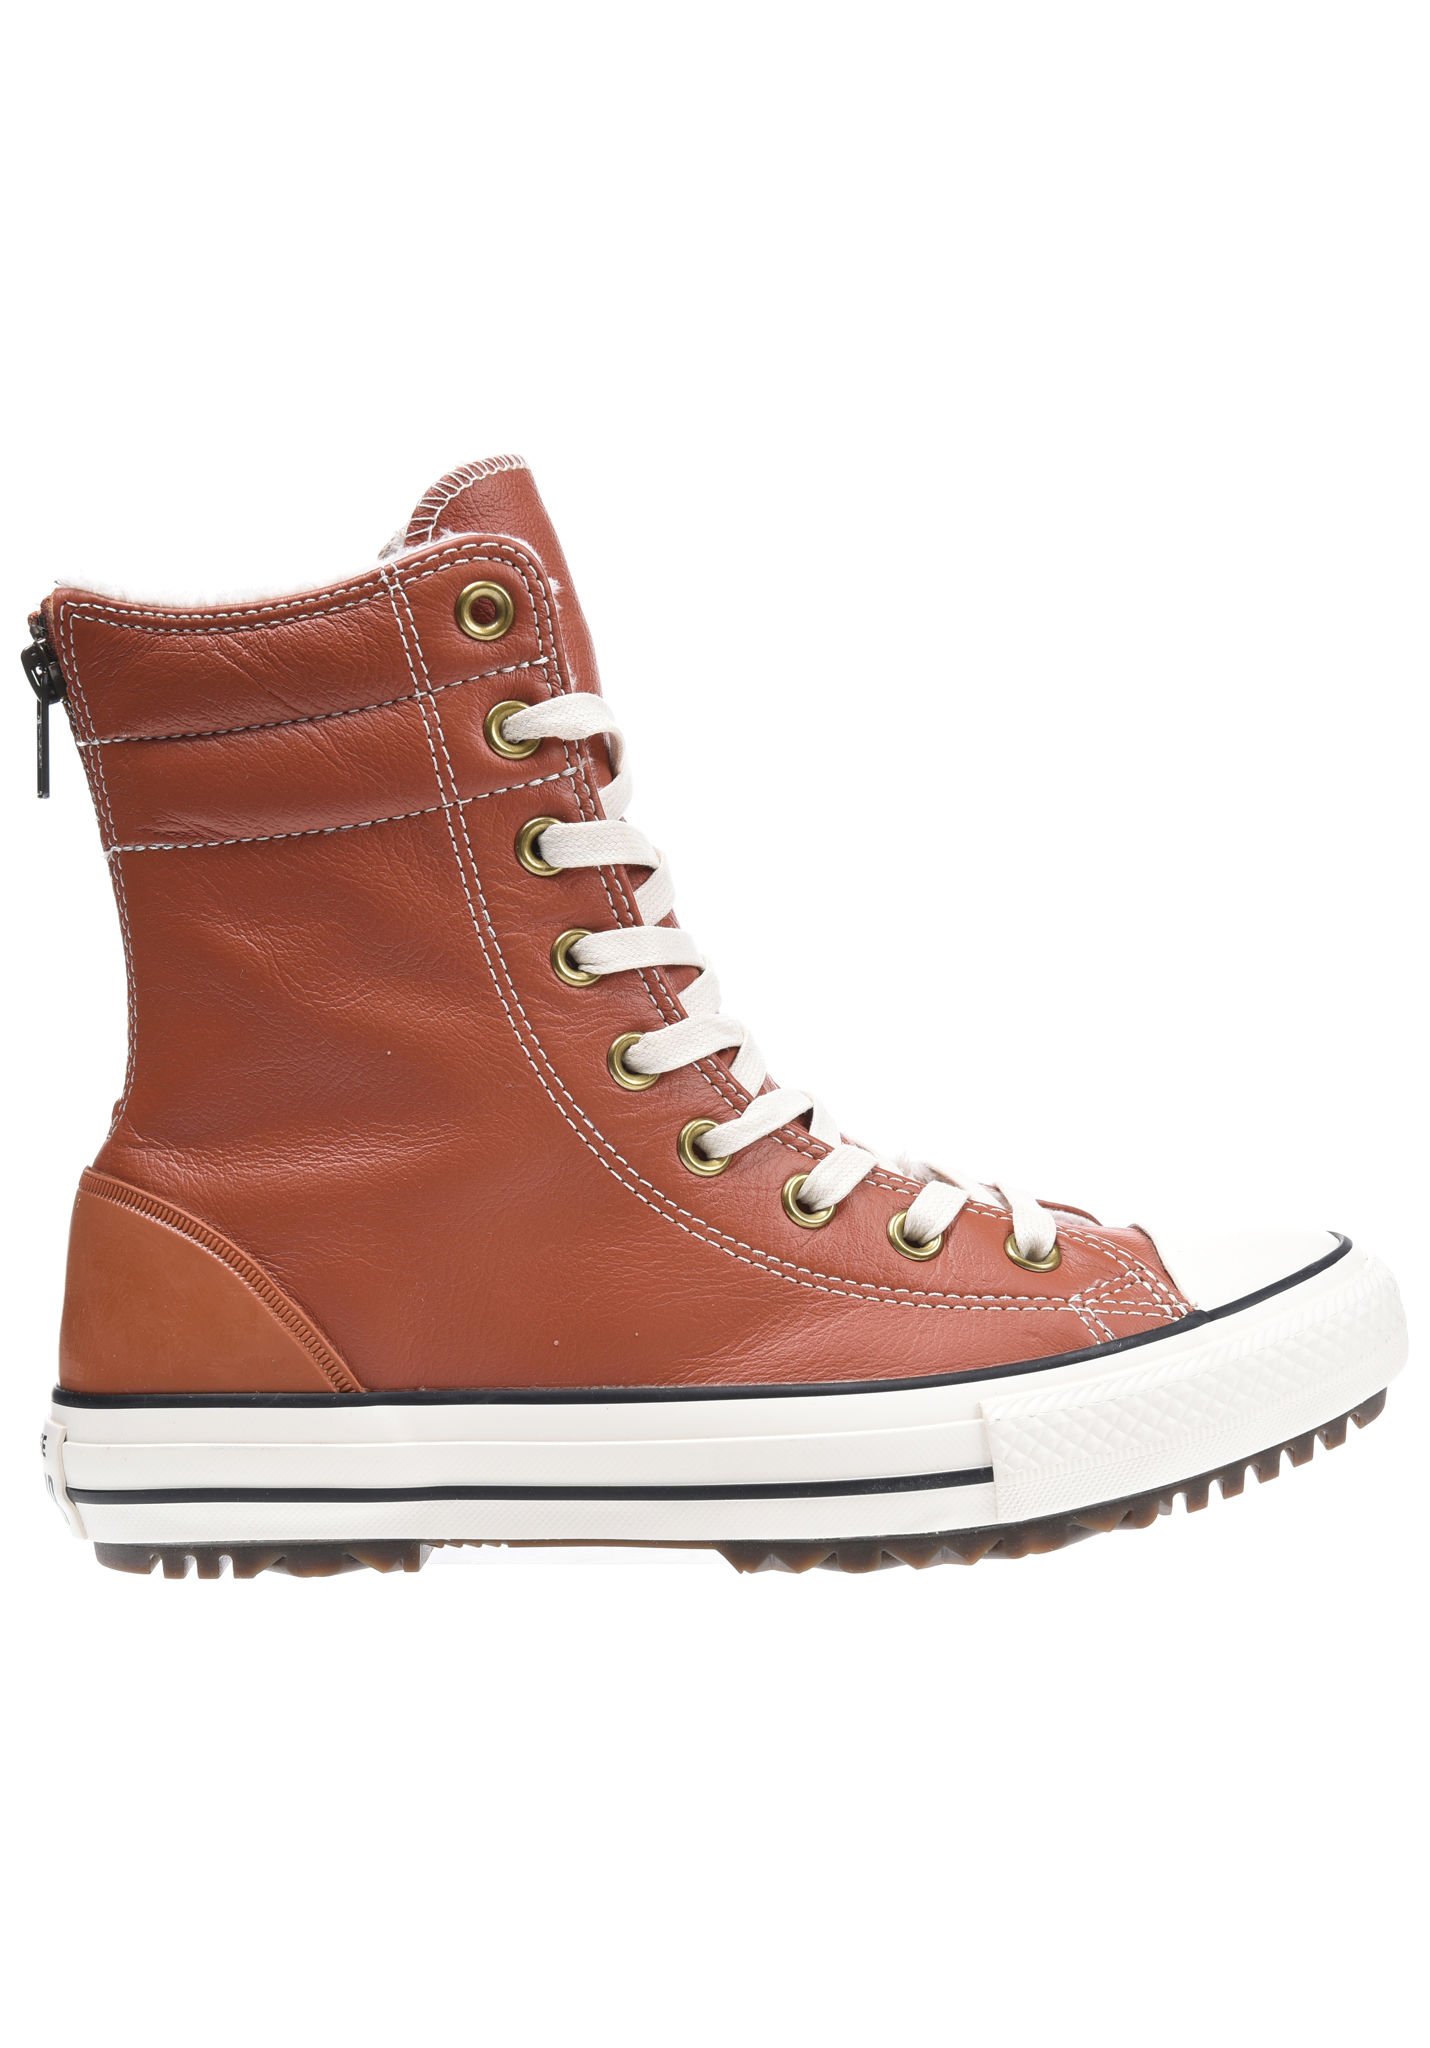 3410ad62 Converse Chuck Taylor All Star Hi-Rise Lthr - Botines para Mujeres - Marrón  - Planet Sports